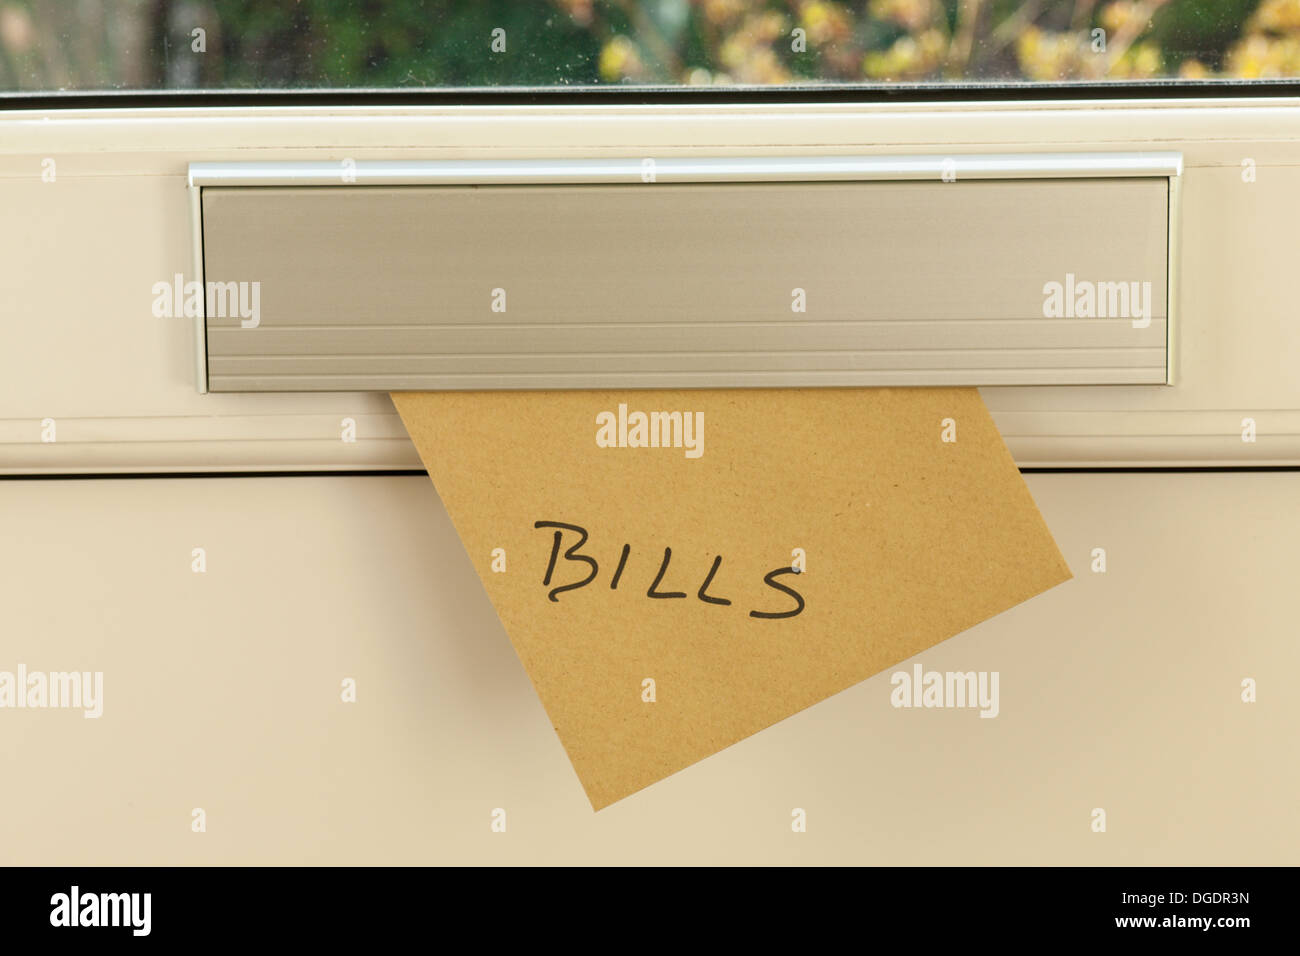 Bill posted through house letter box - Stock Image